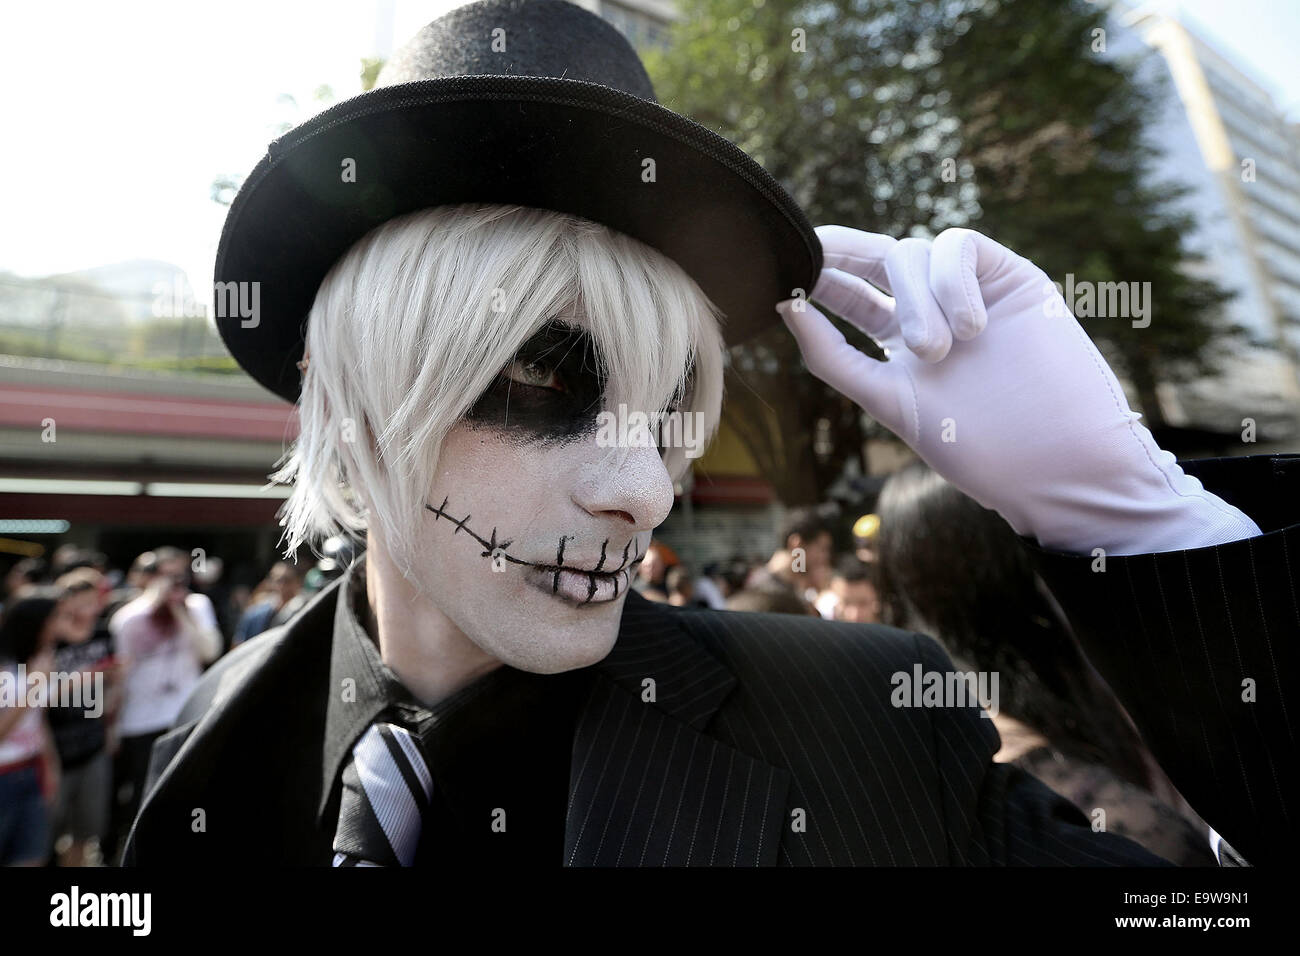 Sao Paulo, Brazil. 2nd Nov, 2014. A person wearing makeup poses during the Zombie Walk, in the context of the celebrations Stock Photo